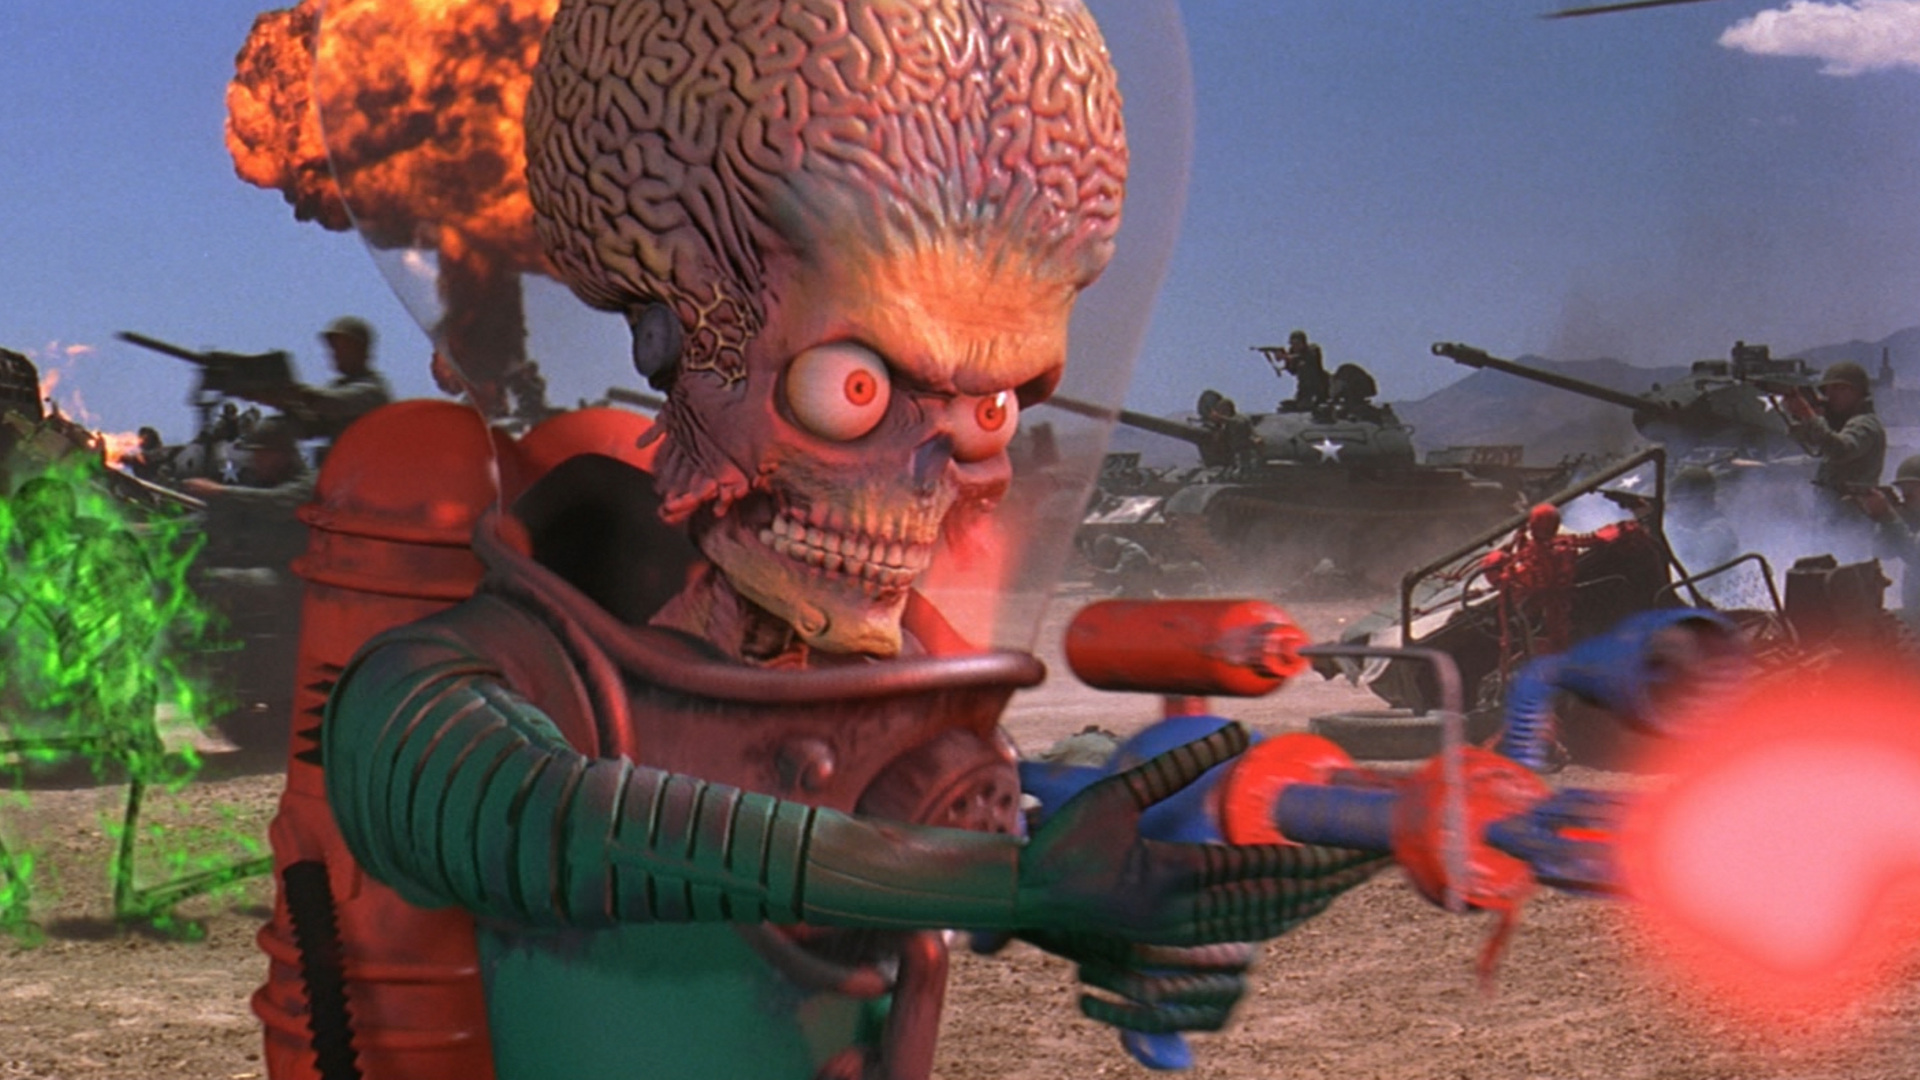 Mars Attacks Is Still Equally Funny And Unsettling 20 Years